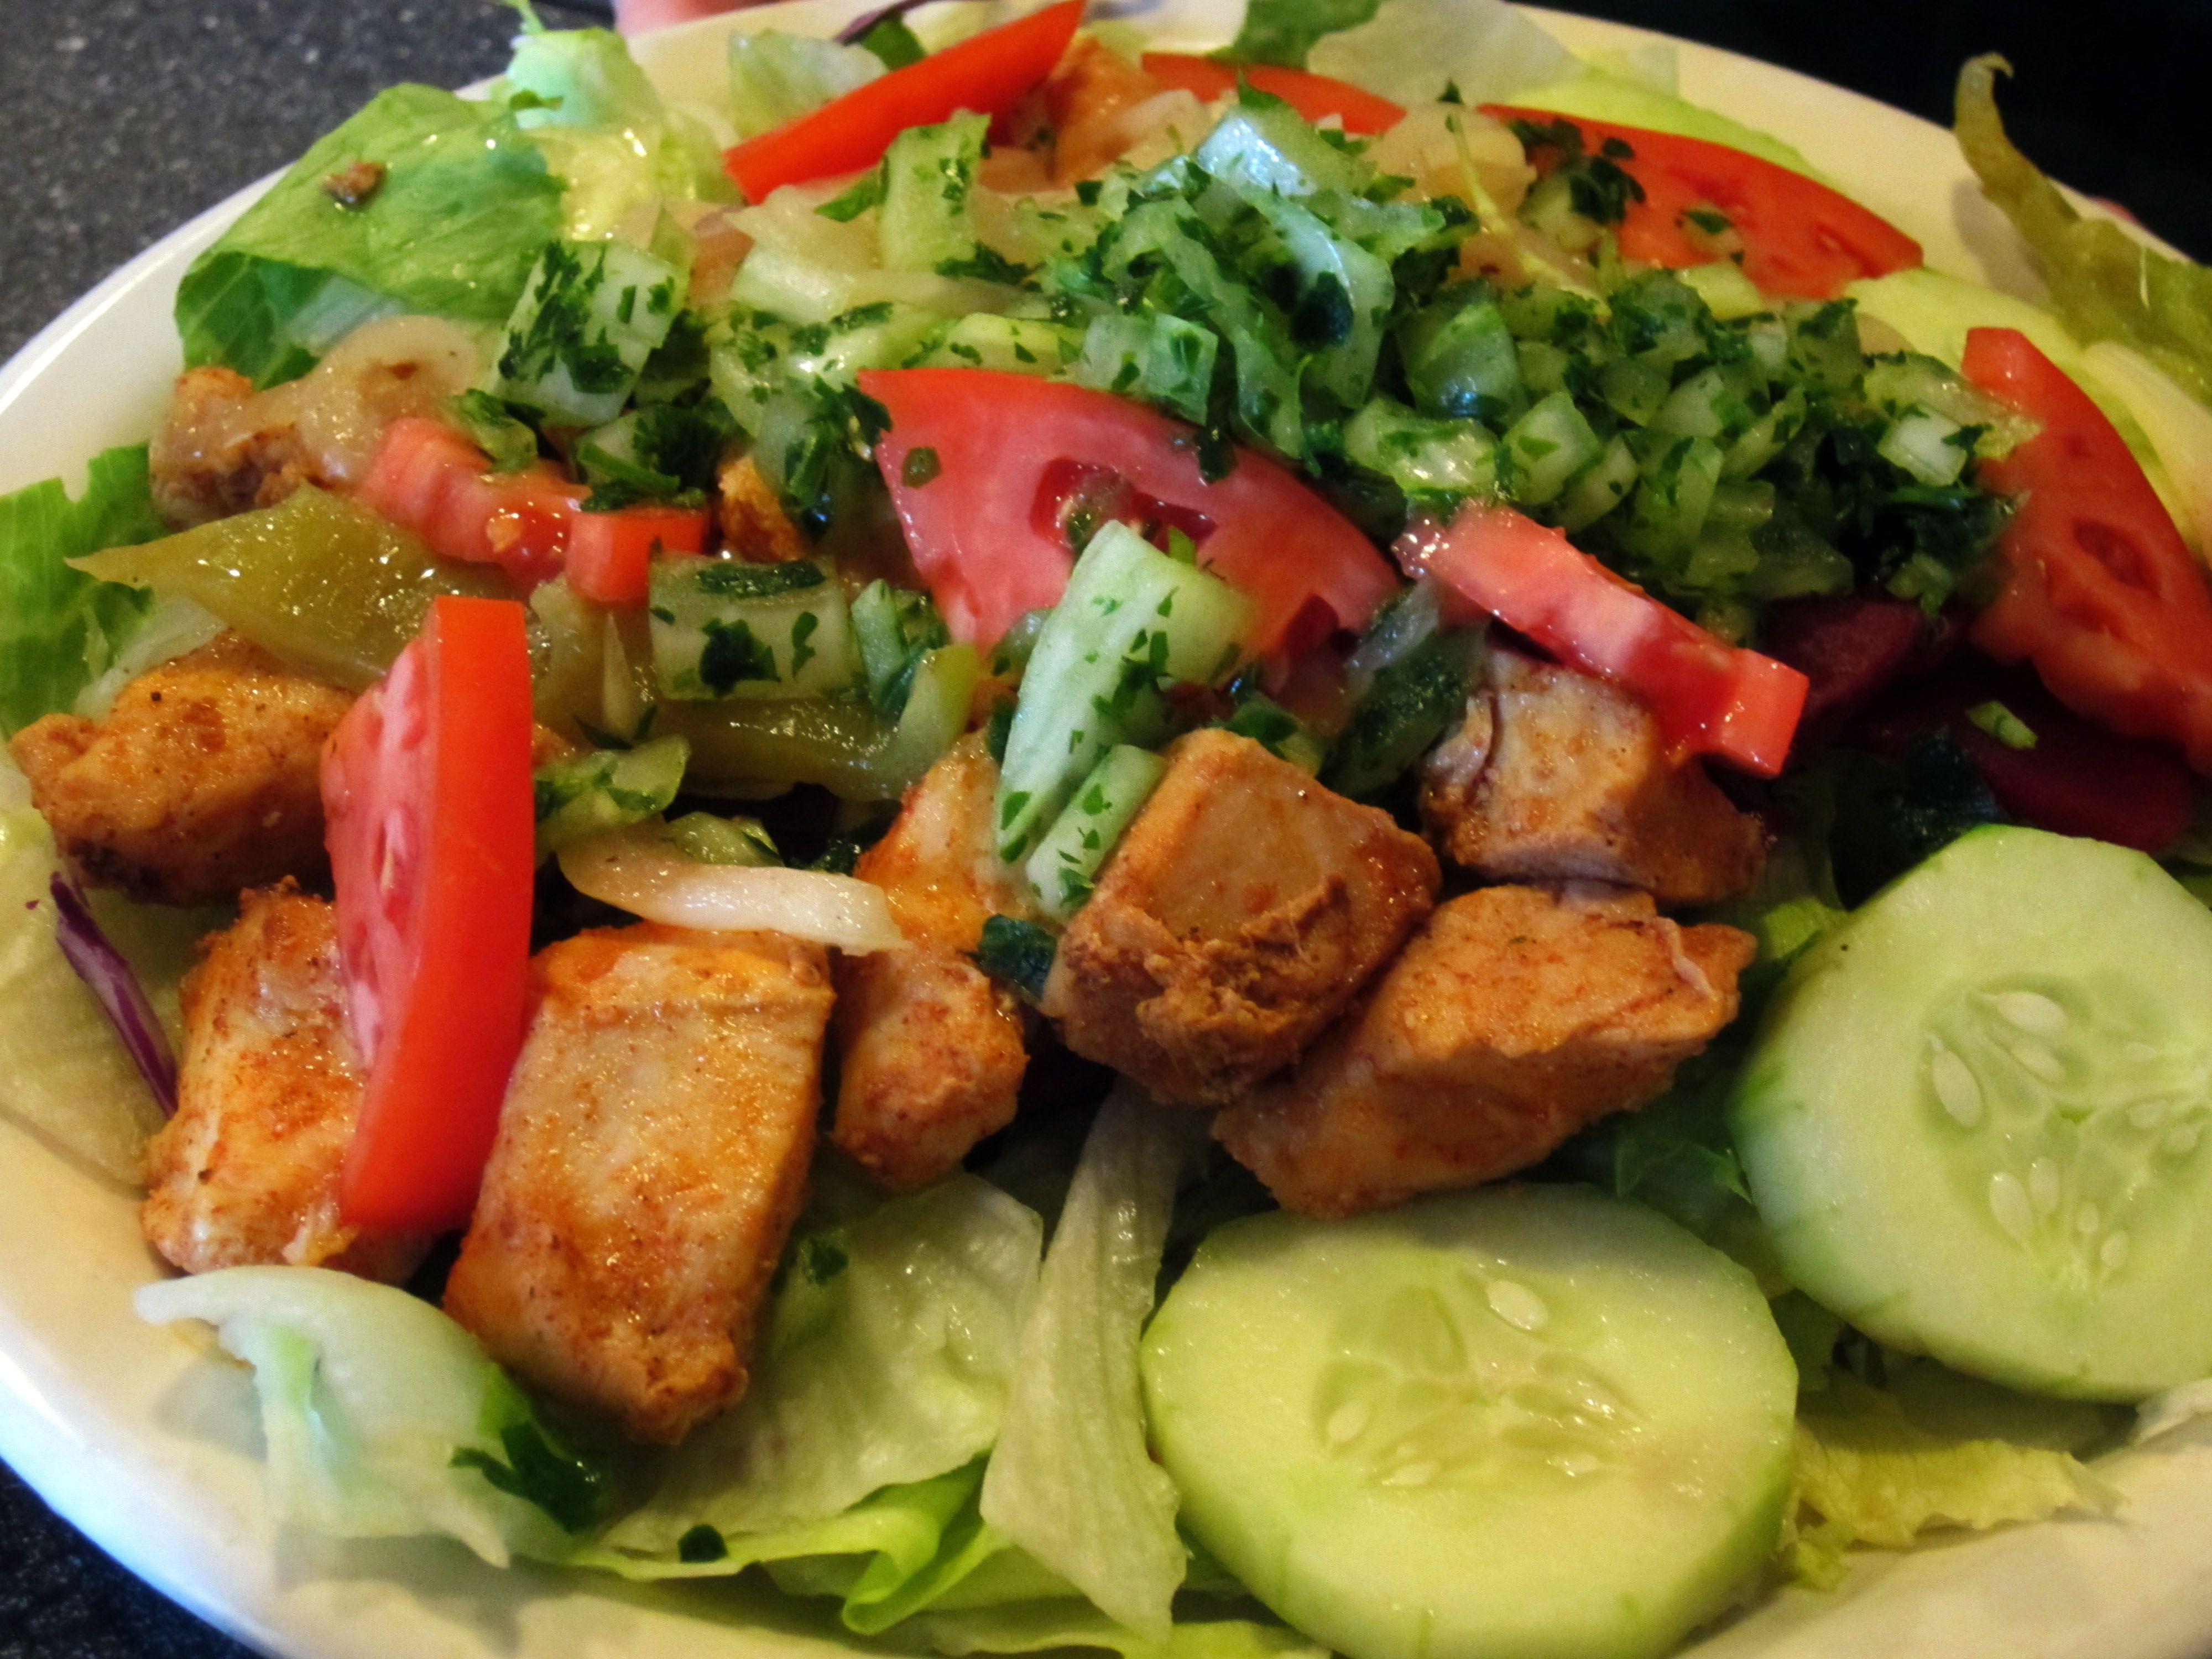 Shish Kebab is located across the street from